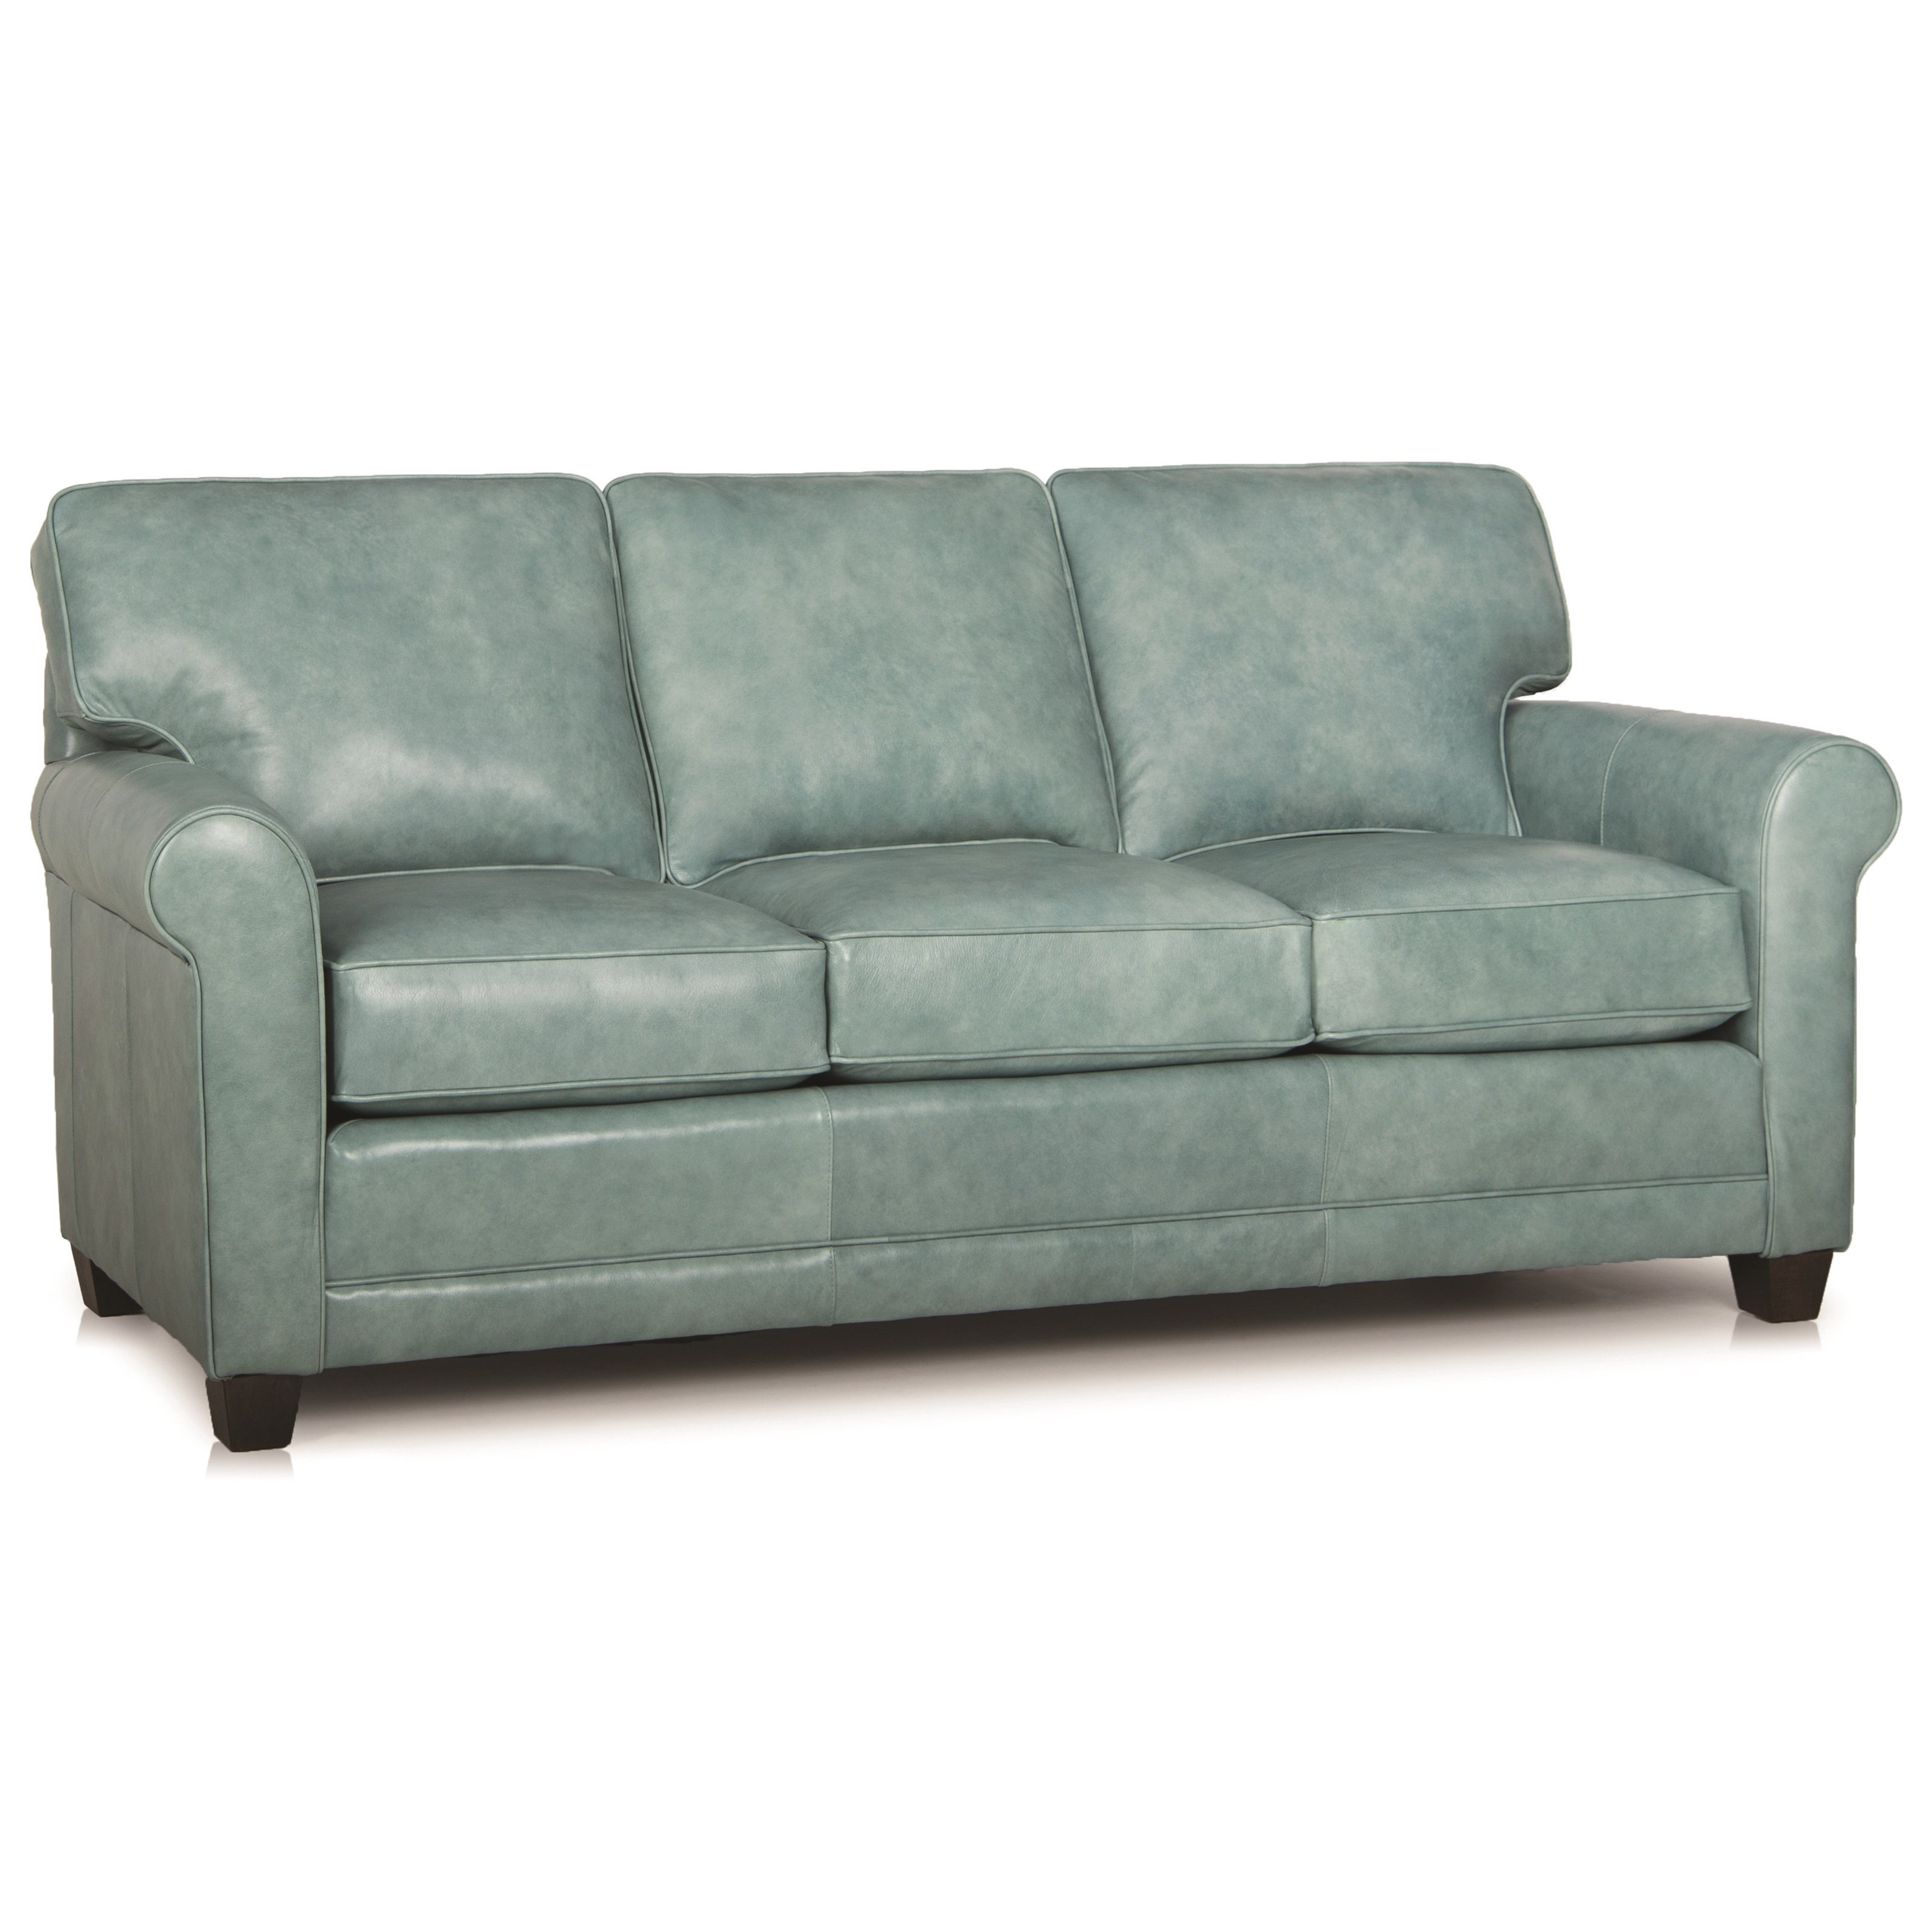 366 Stationary Sofa by Smith Brothers at Pilgrim Furniture City